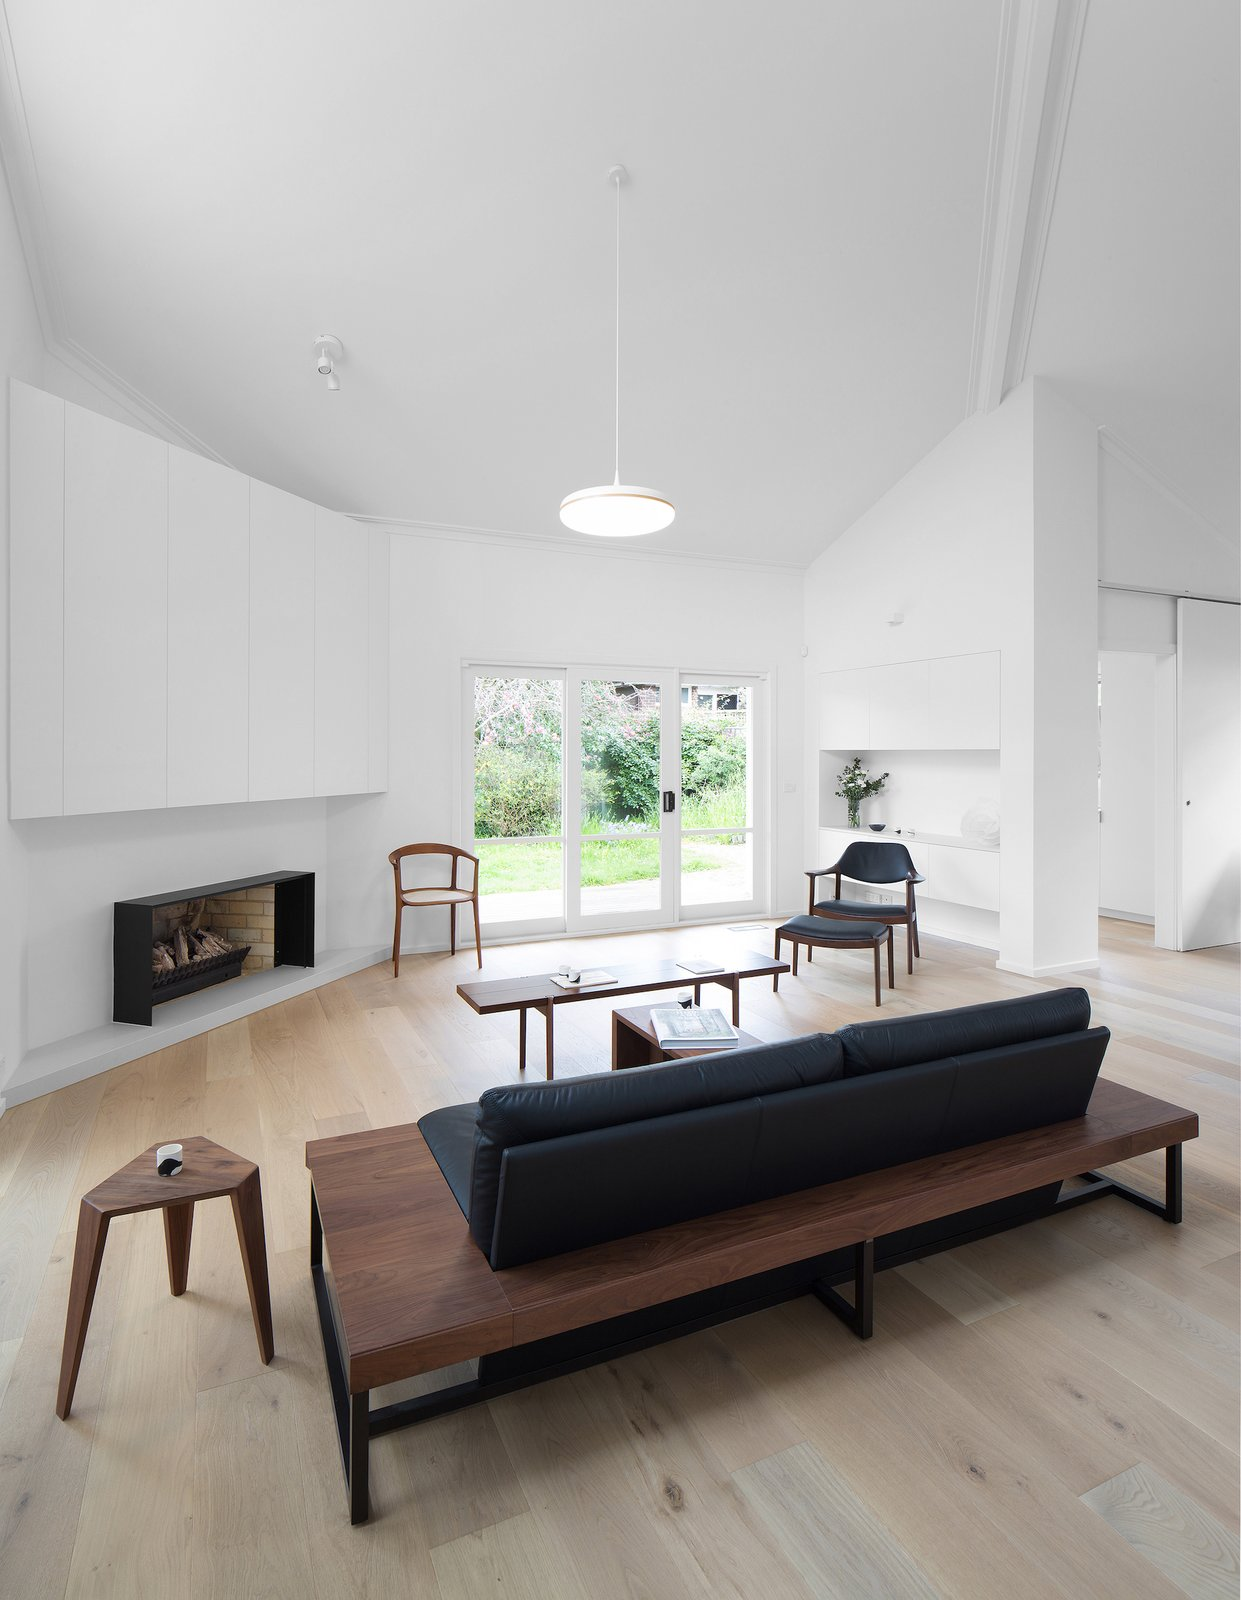 Tagged: Living Room, Pendant Lighting, Chair, Coffee Tables, Bench, Wood Burning Fireplace, and Light Hardwood Floor.  Corhampton Rd Residence by Leibal